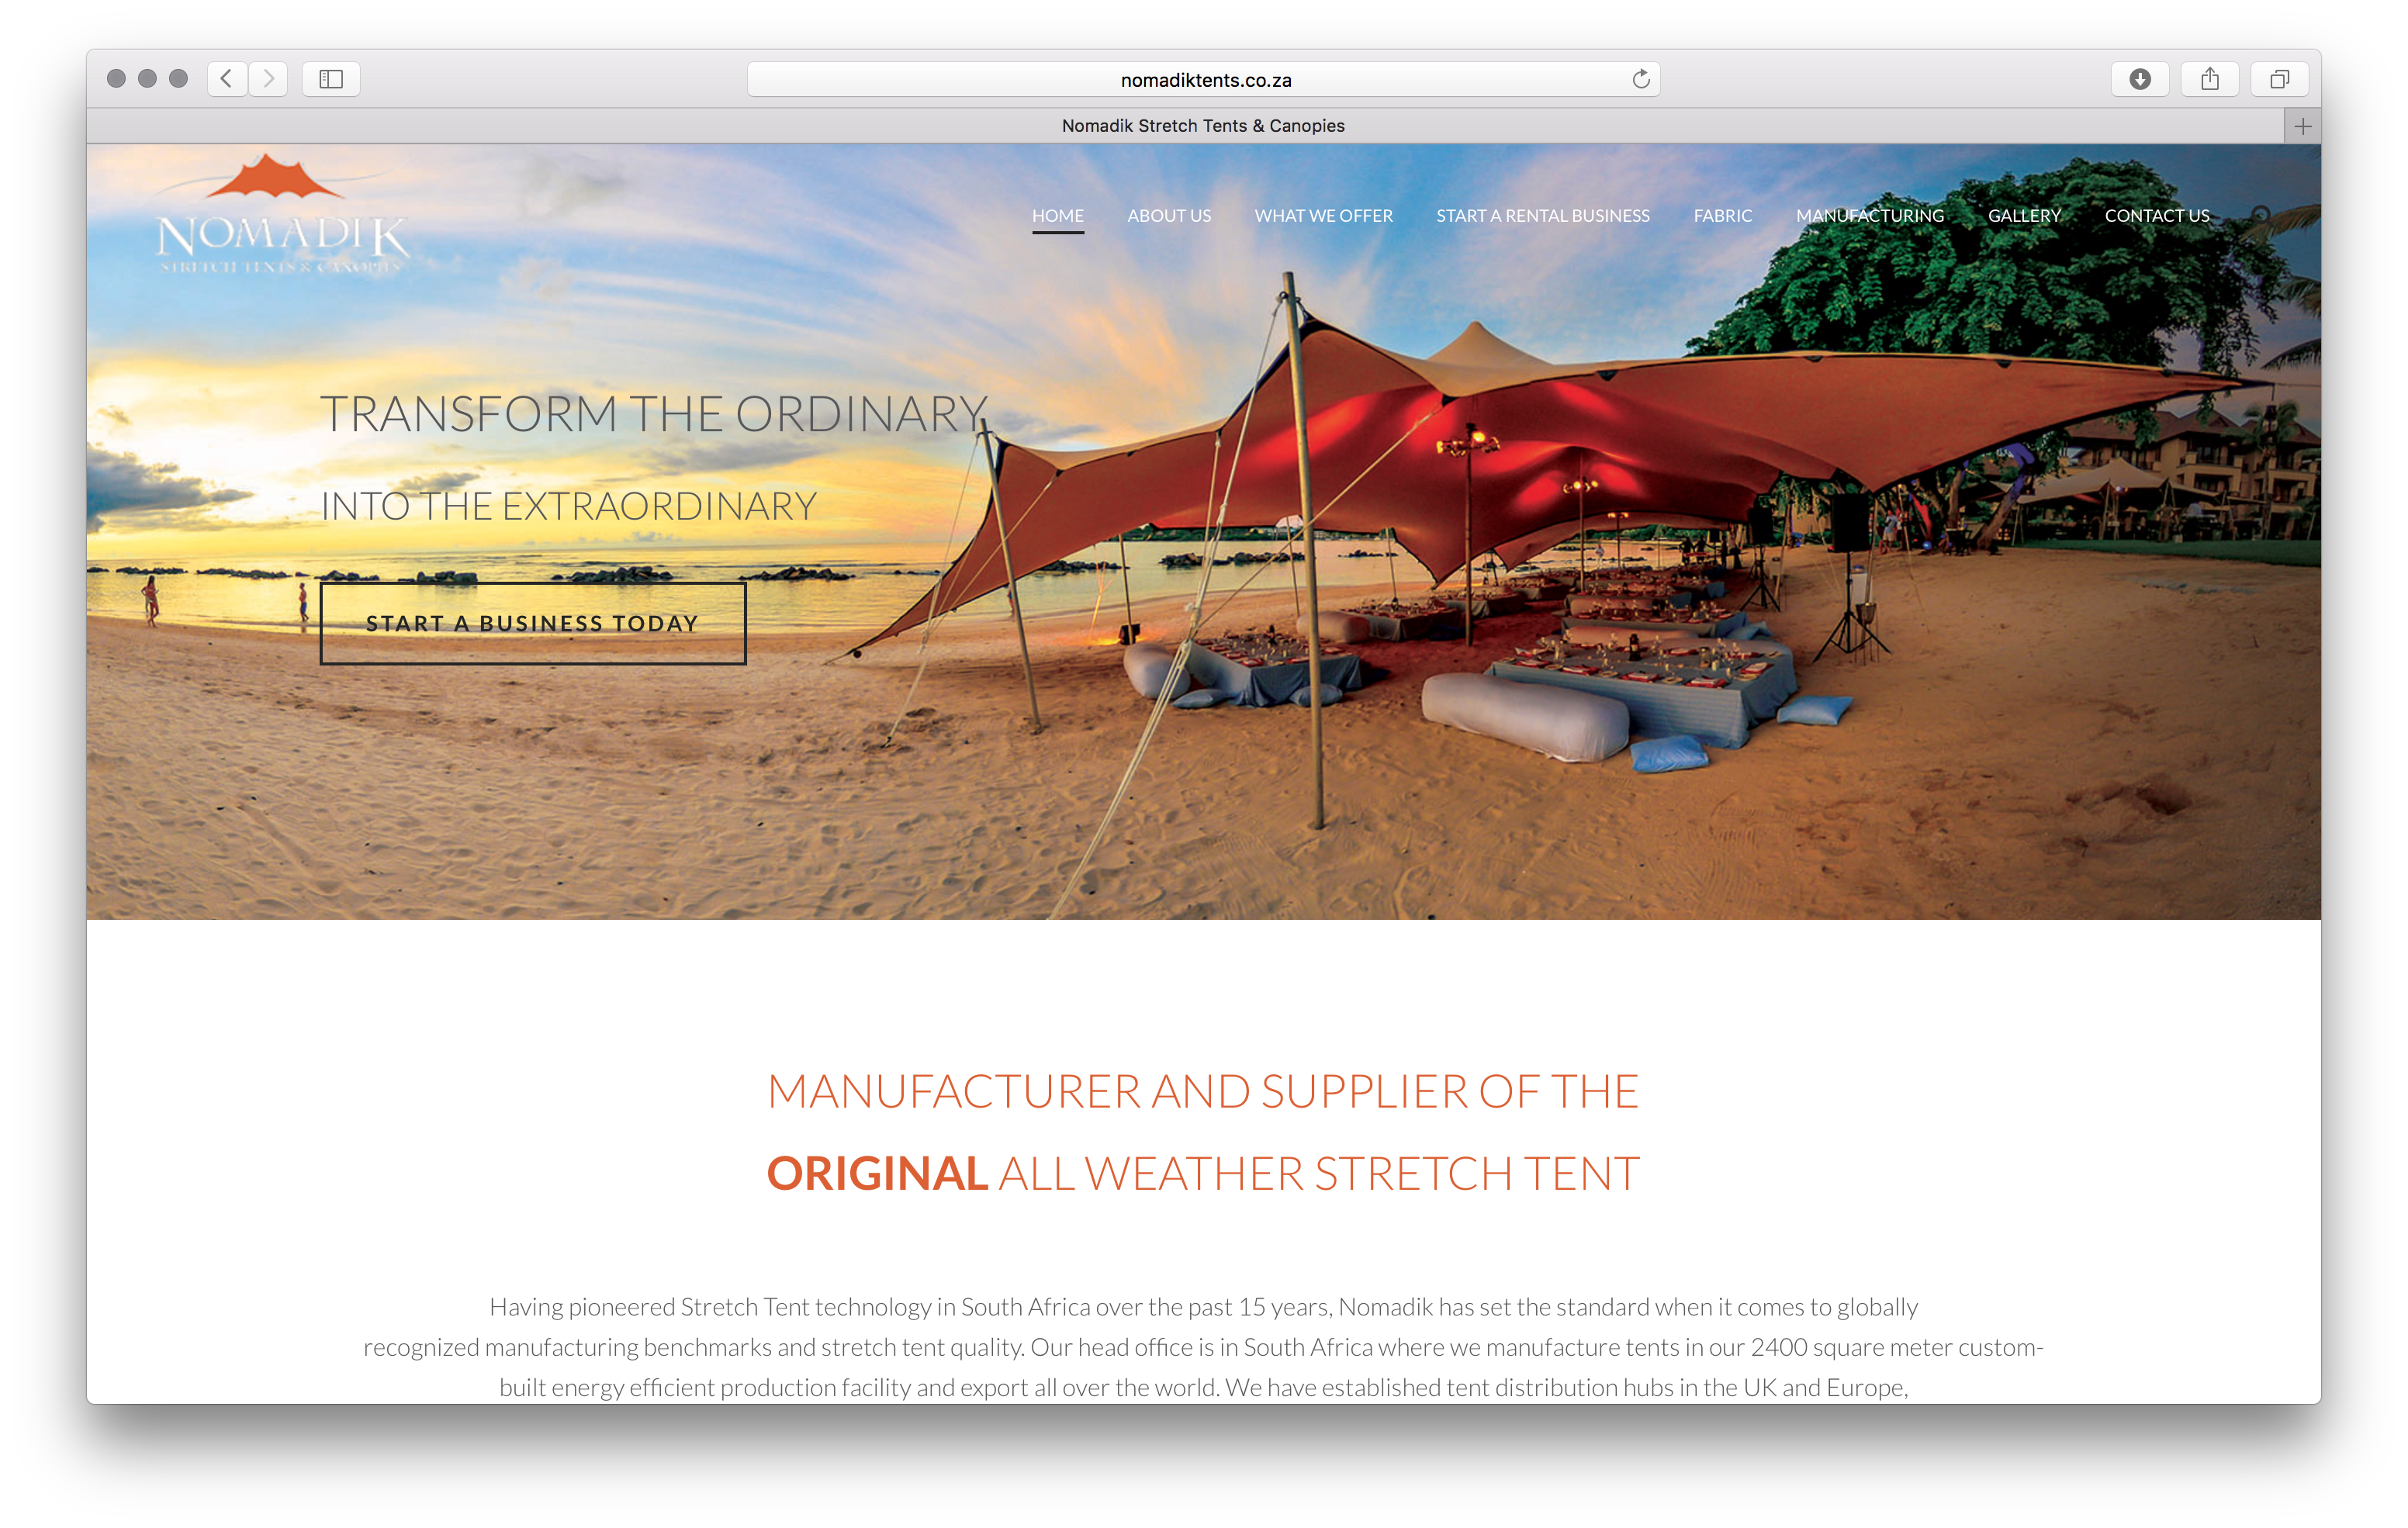 Nomadik Stretch Tent Website